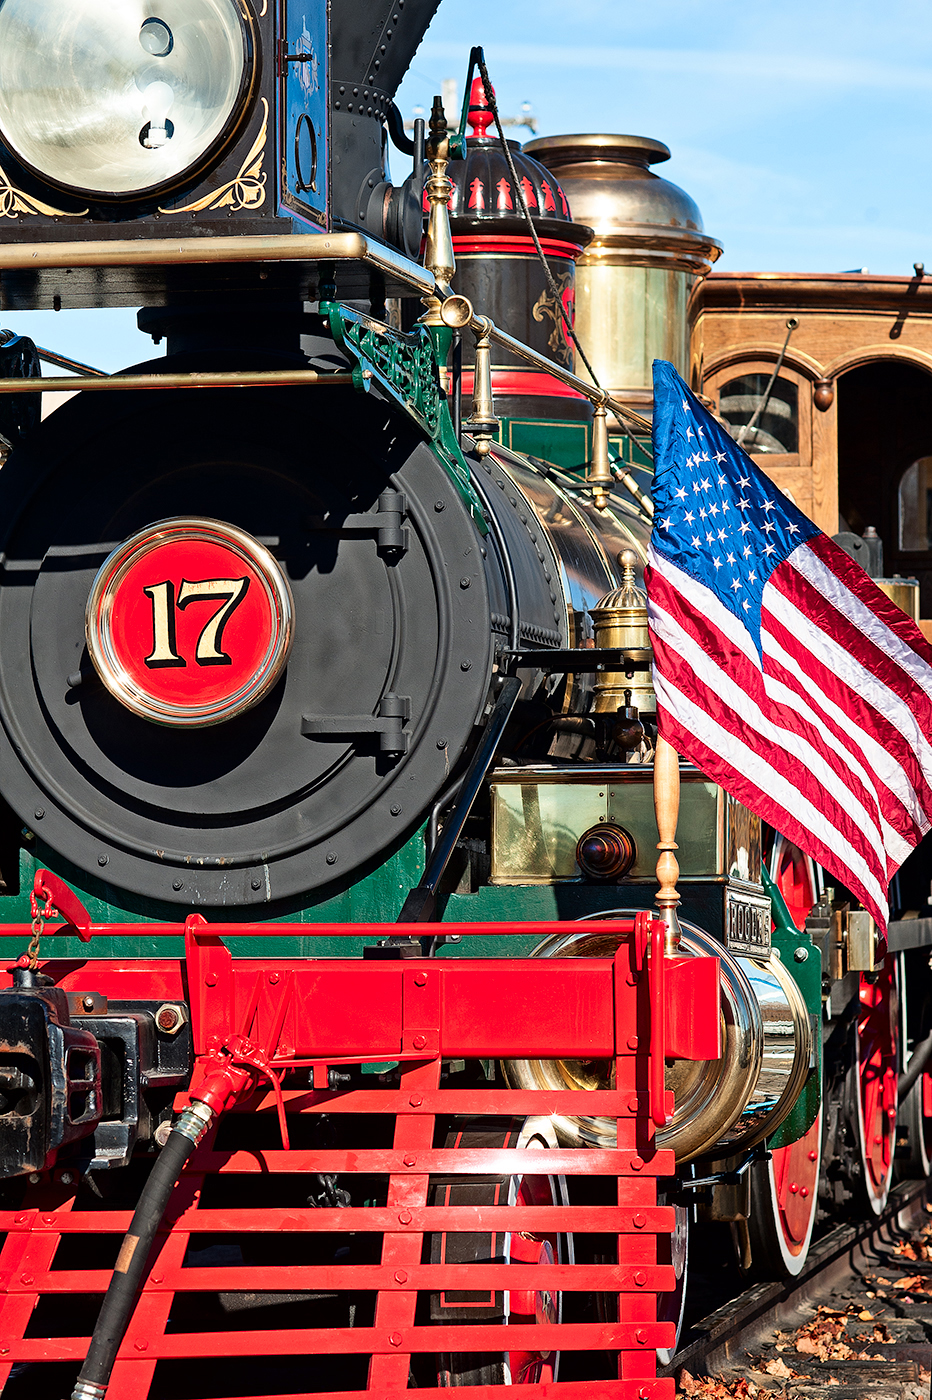 "Photo of the Steam Locomotive NCRR 17 ""The York"" at Steam into History, New Freedom,"